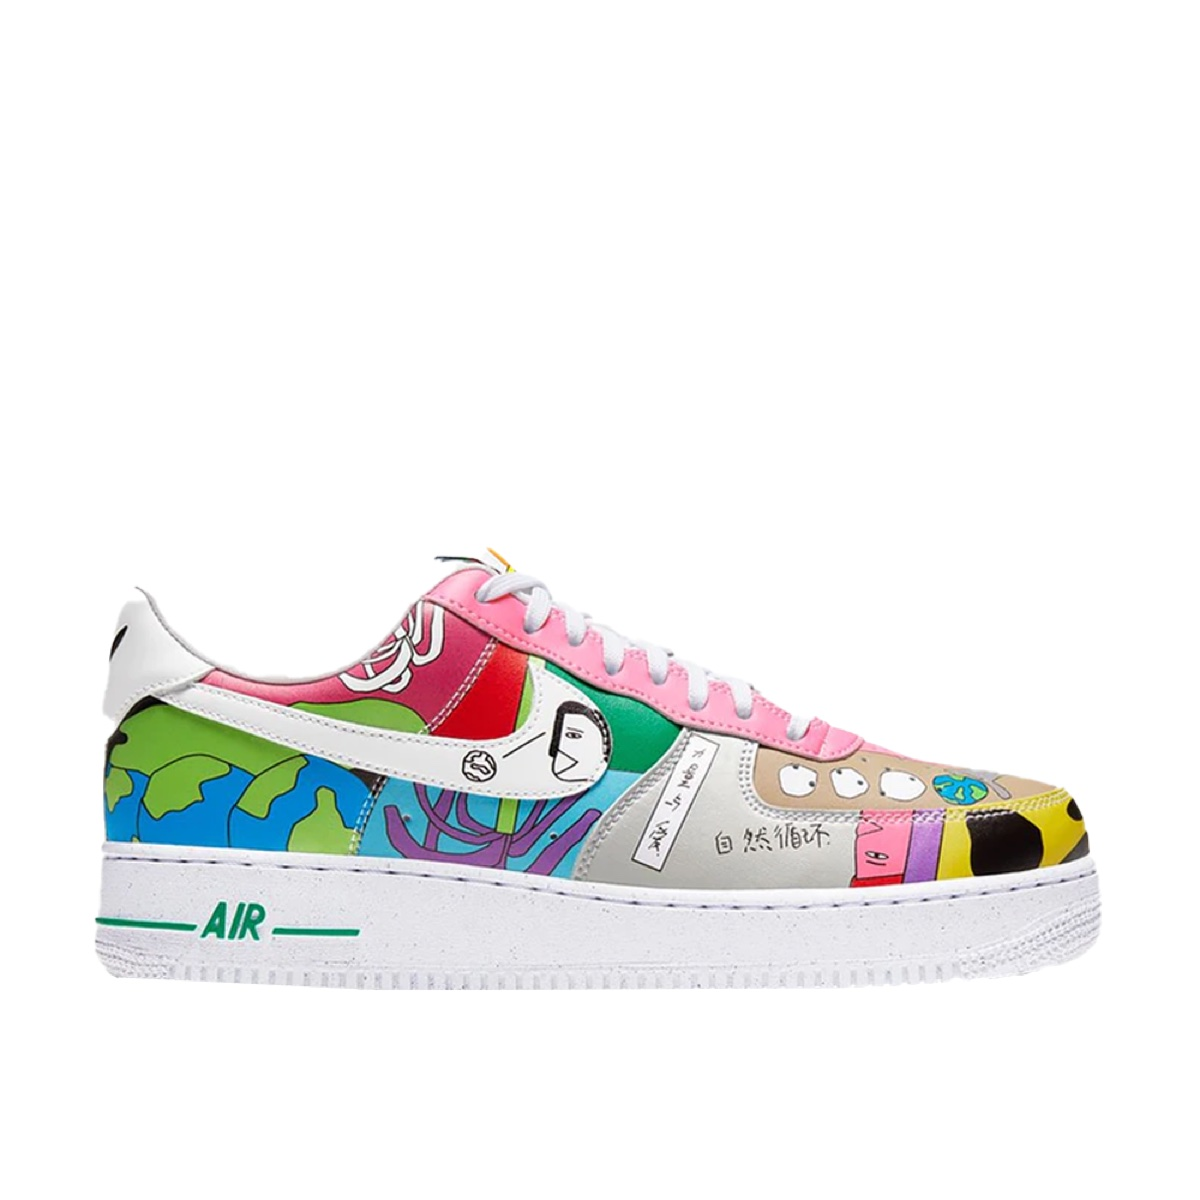 Nike Air Force 1 Flyleather Ruohan Wang